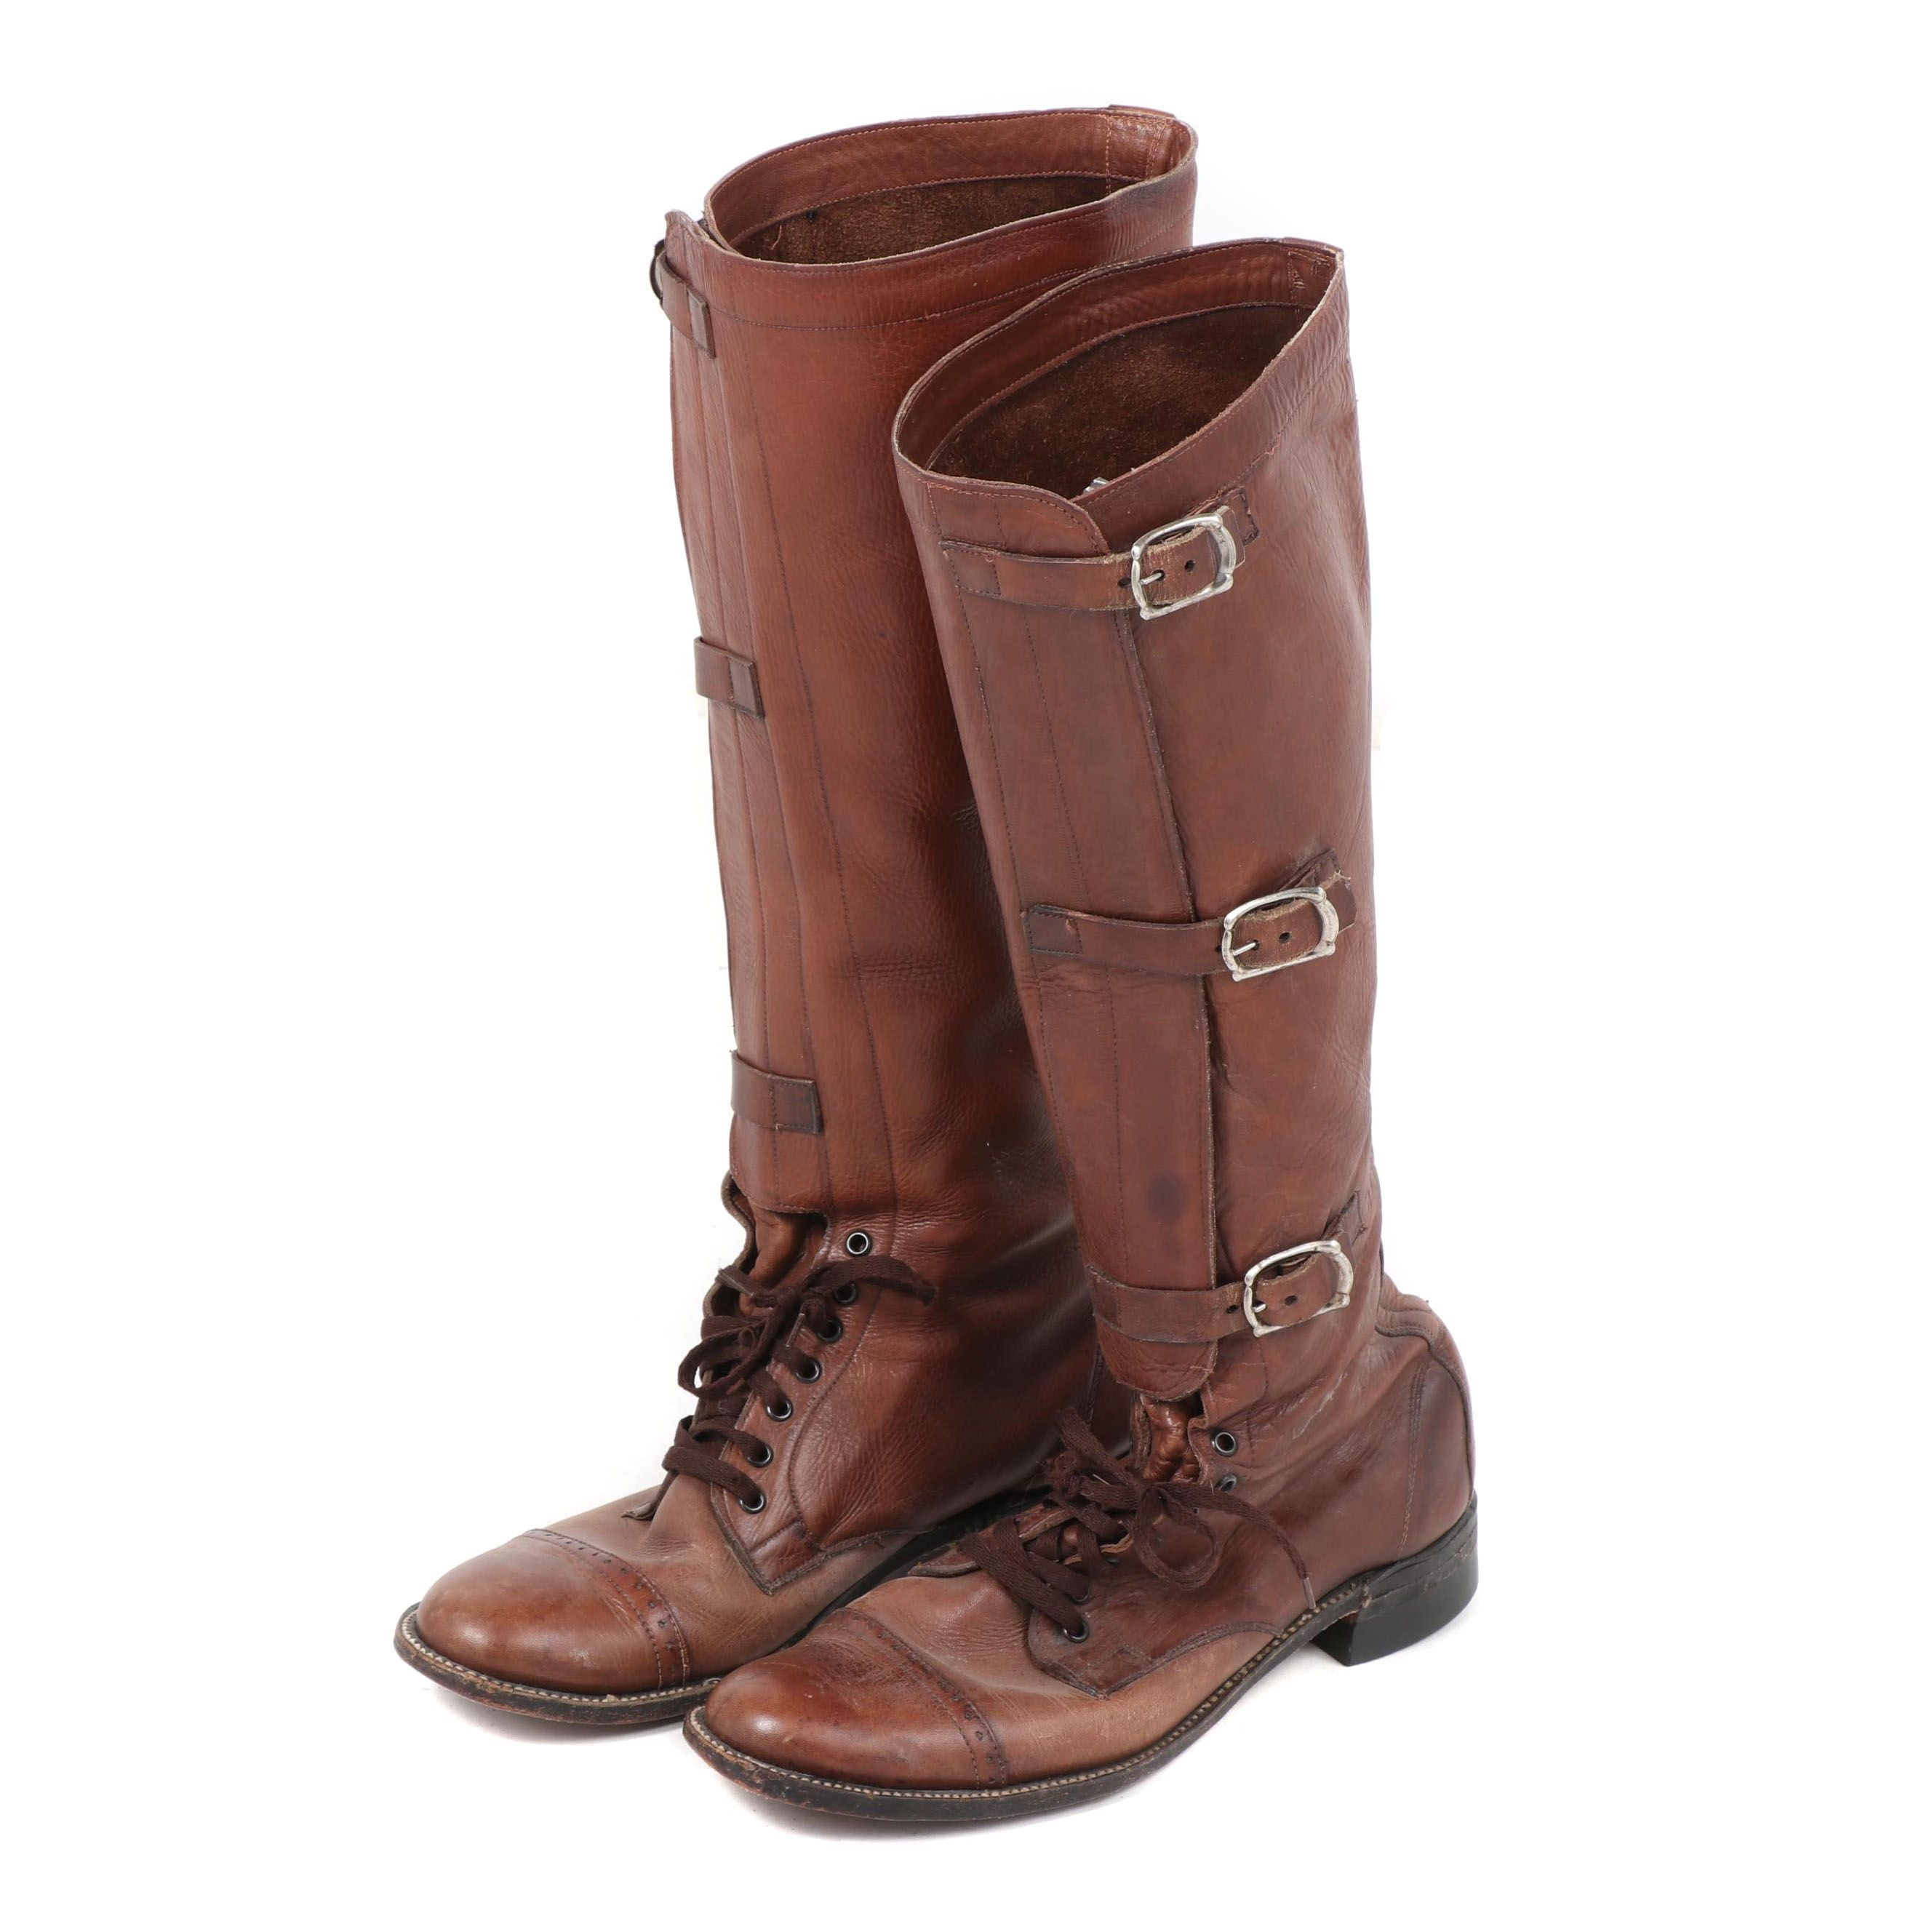 Men's Brown Leather Military Officer's Style Field Boots, Vintage